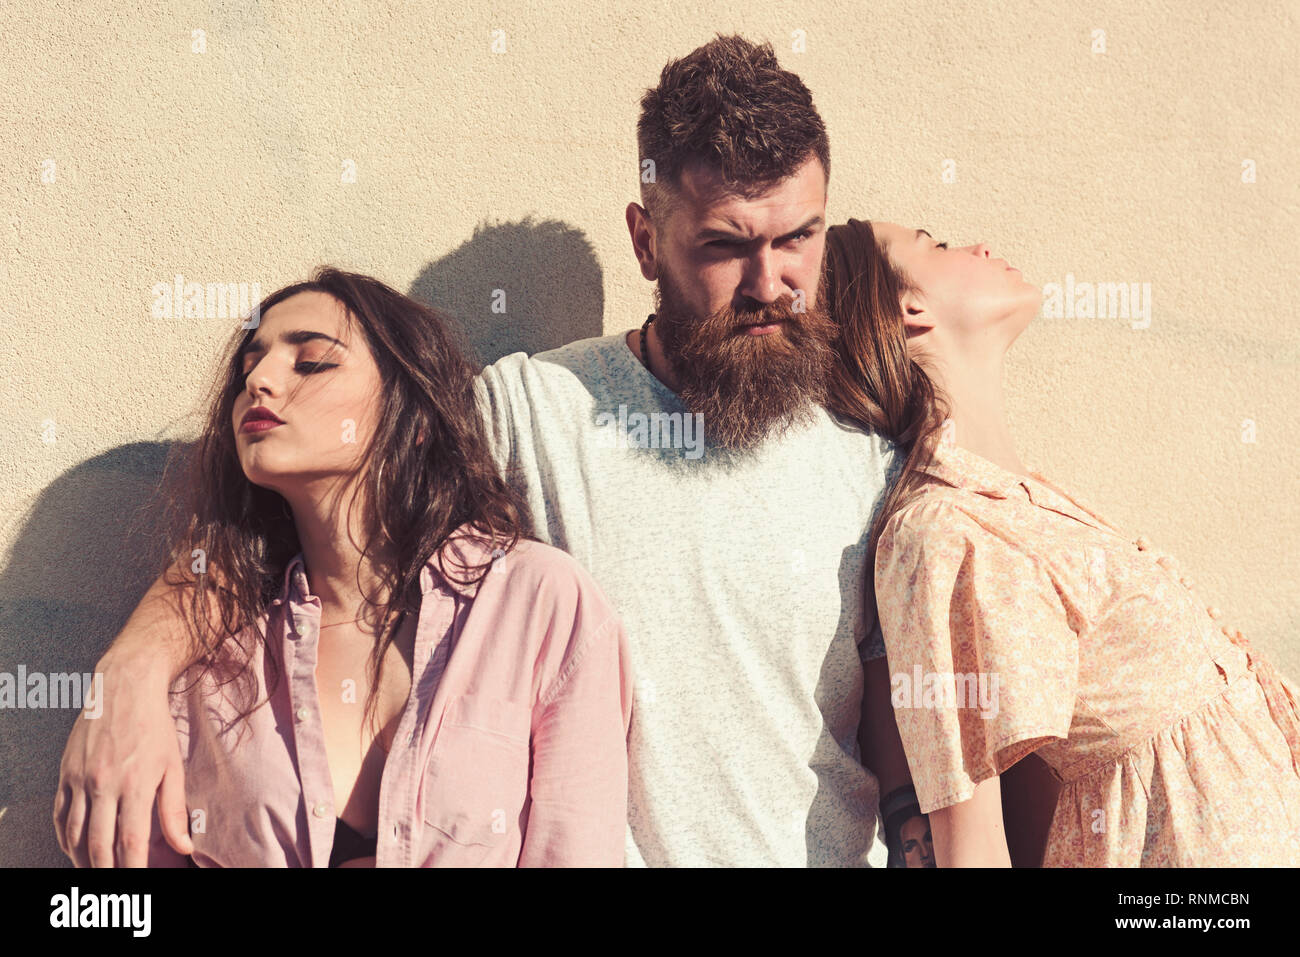 Man with beard hugs two ladies on hot sunny day. Threesome suffers of heat on summer day, wall on background. Girls turned to opposite sides while man - Stock Image